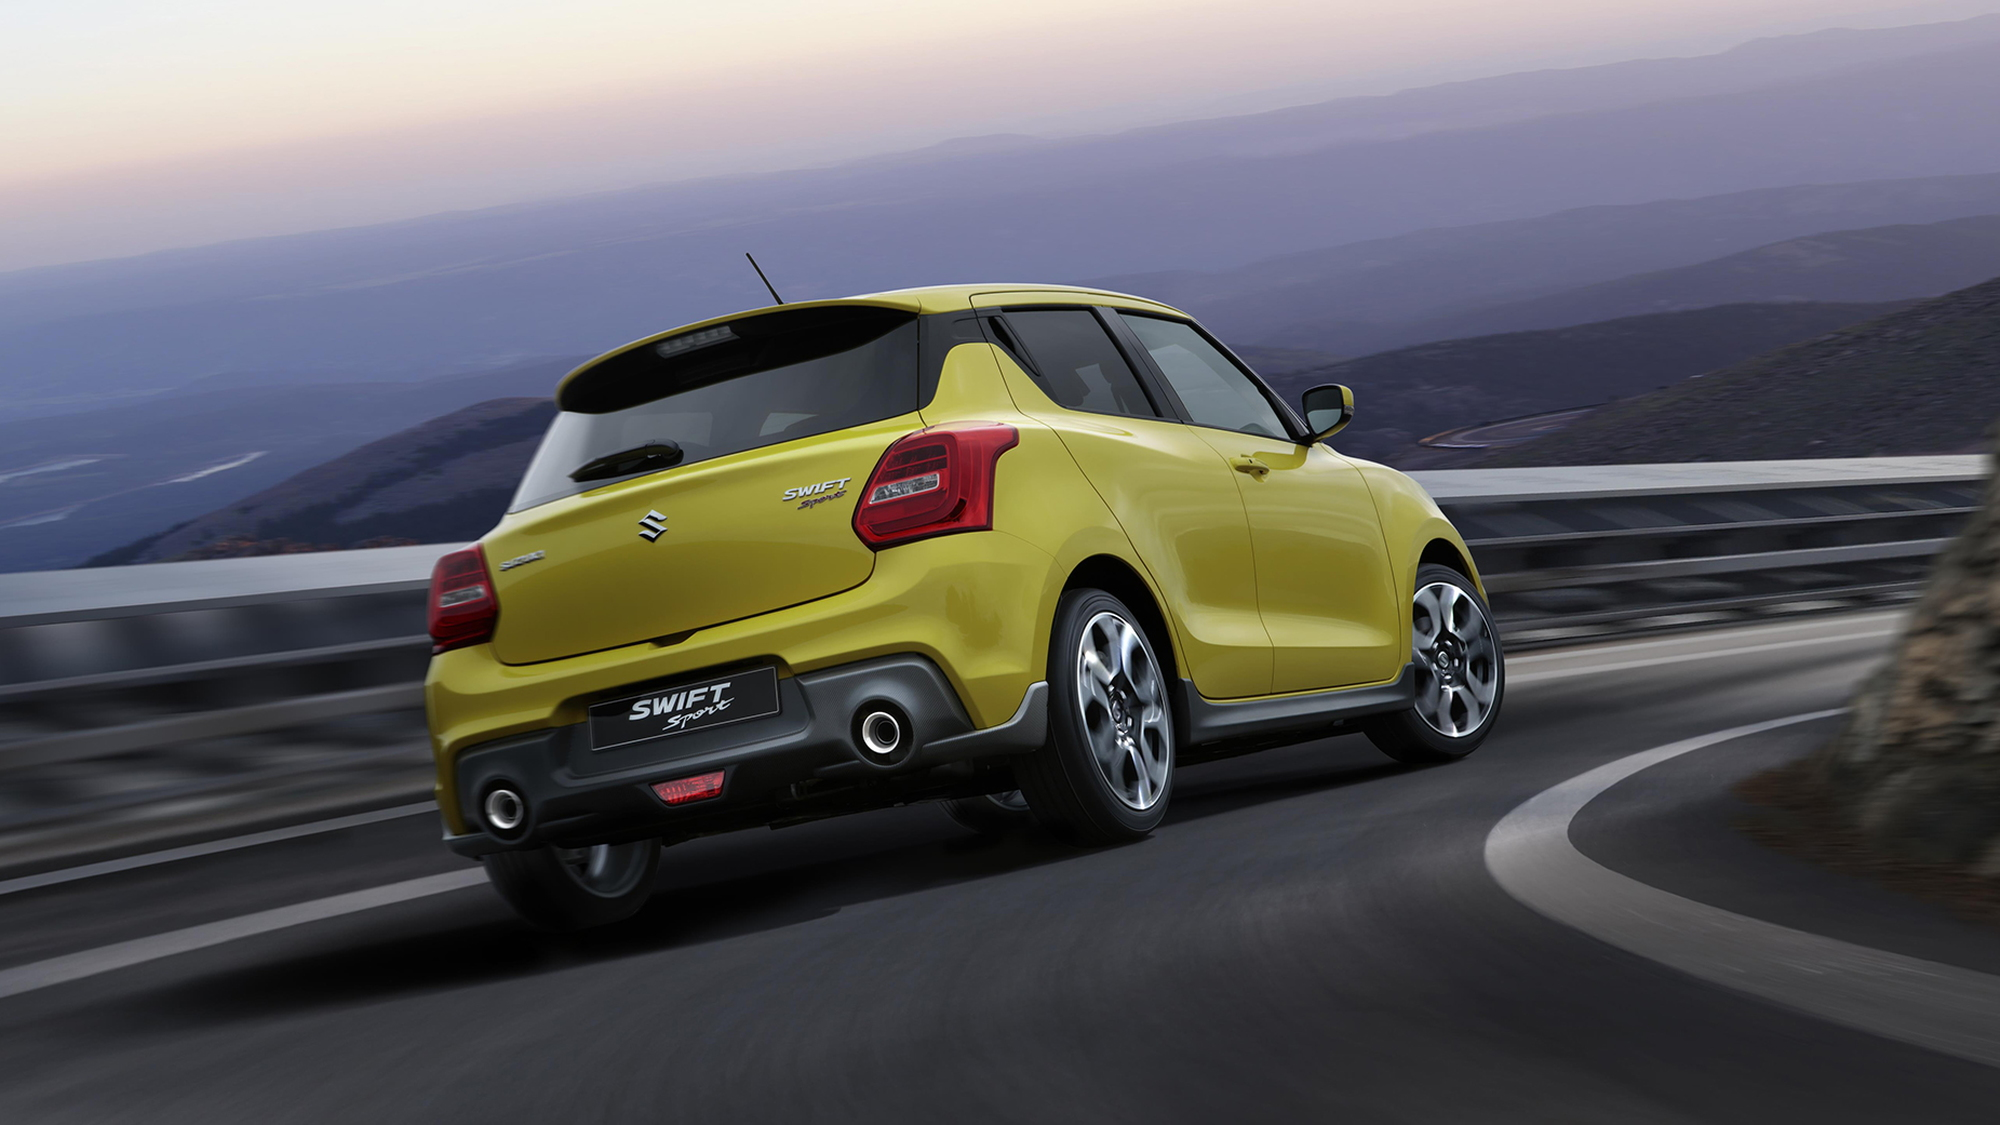 The new 2018 Suzuki Swift Sport